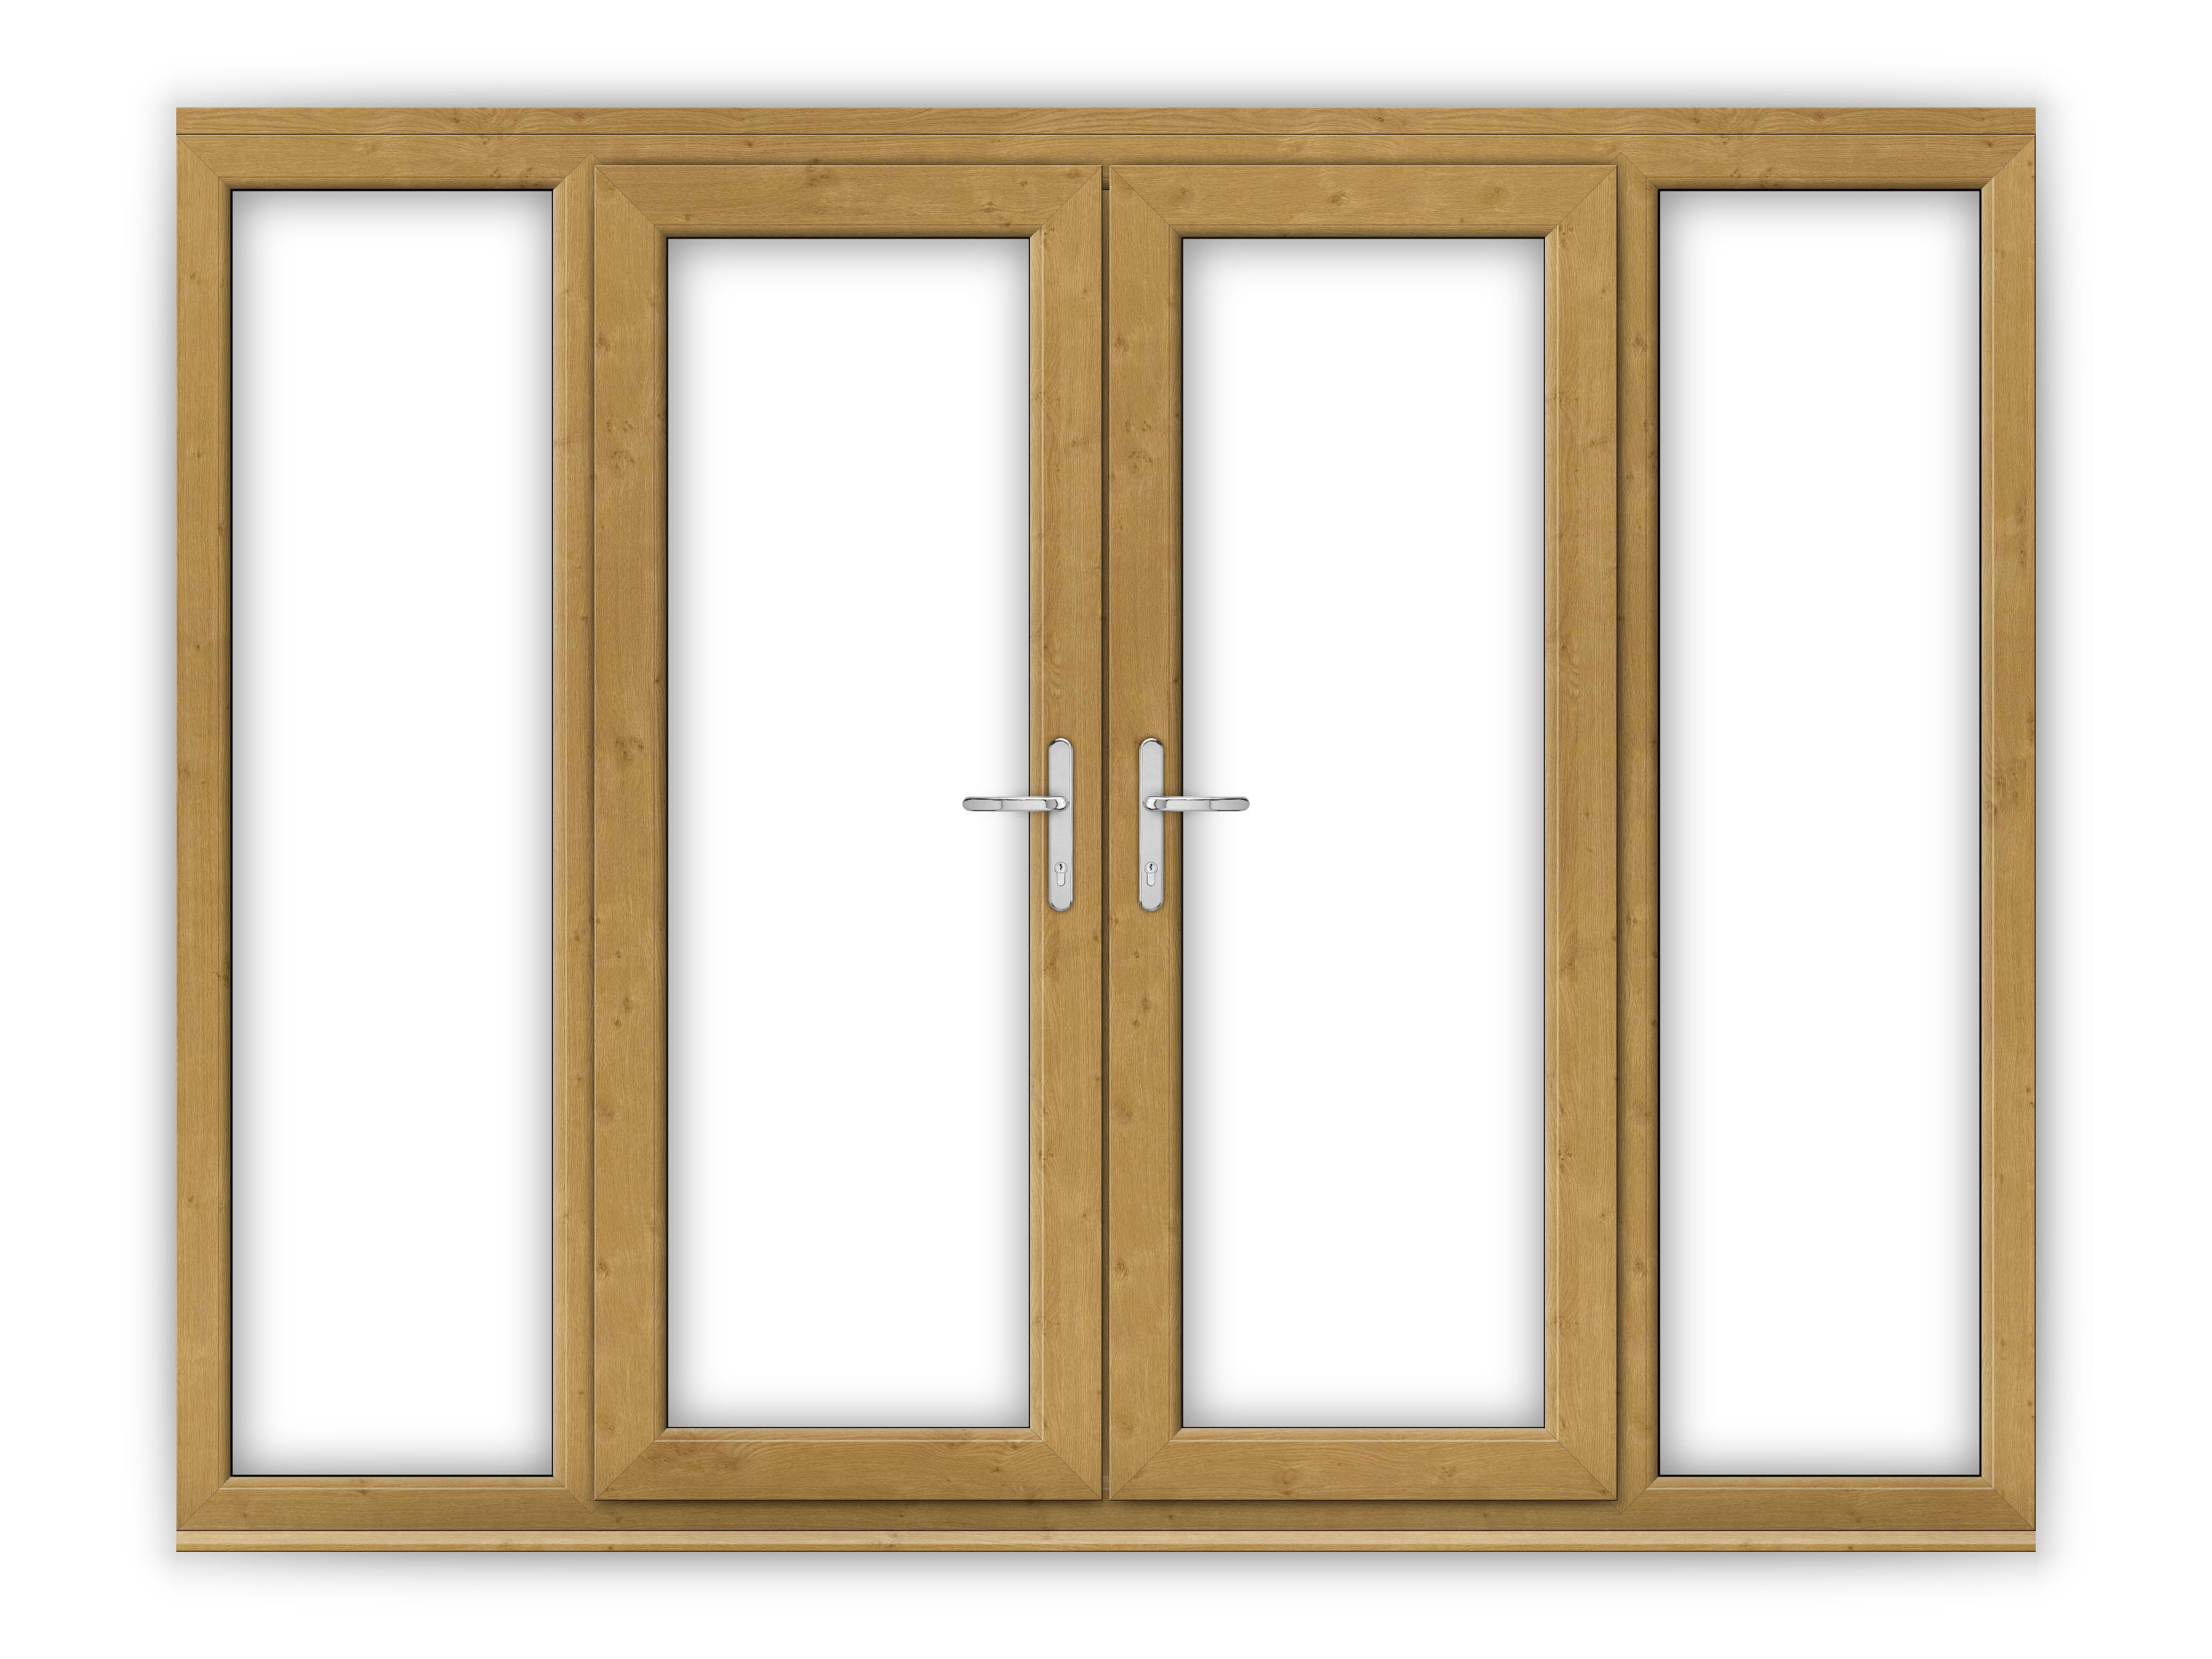 5ft irish oak upvc french doors with wide side panels for 5 ft french patio doors